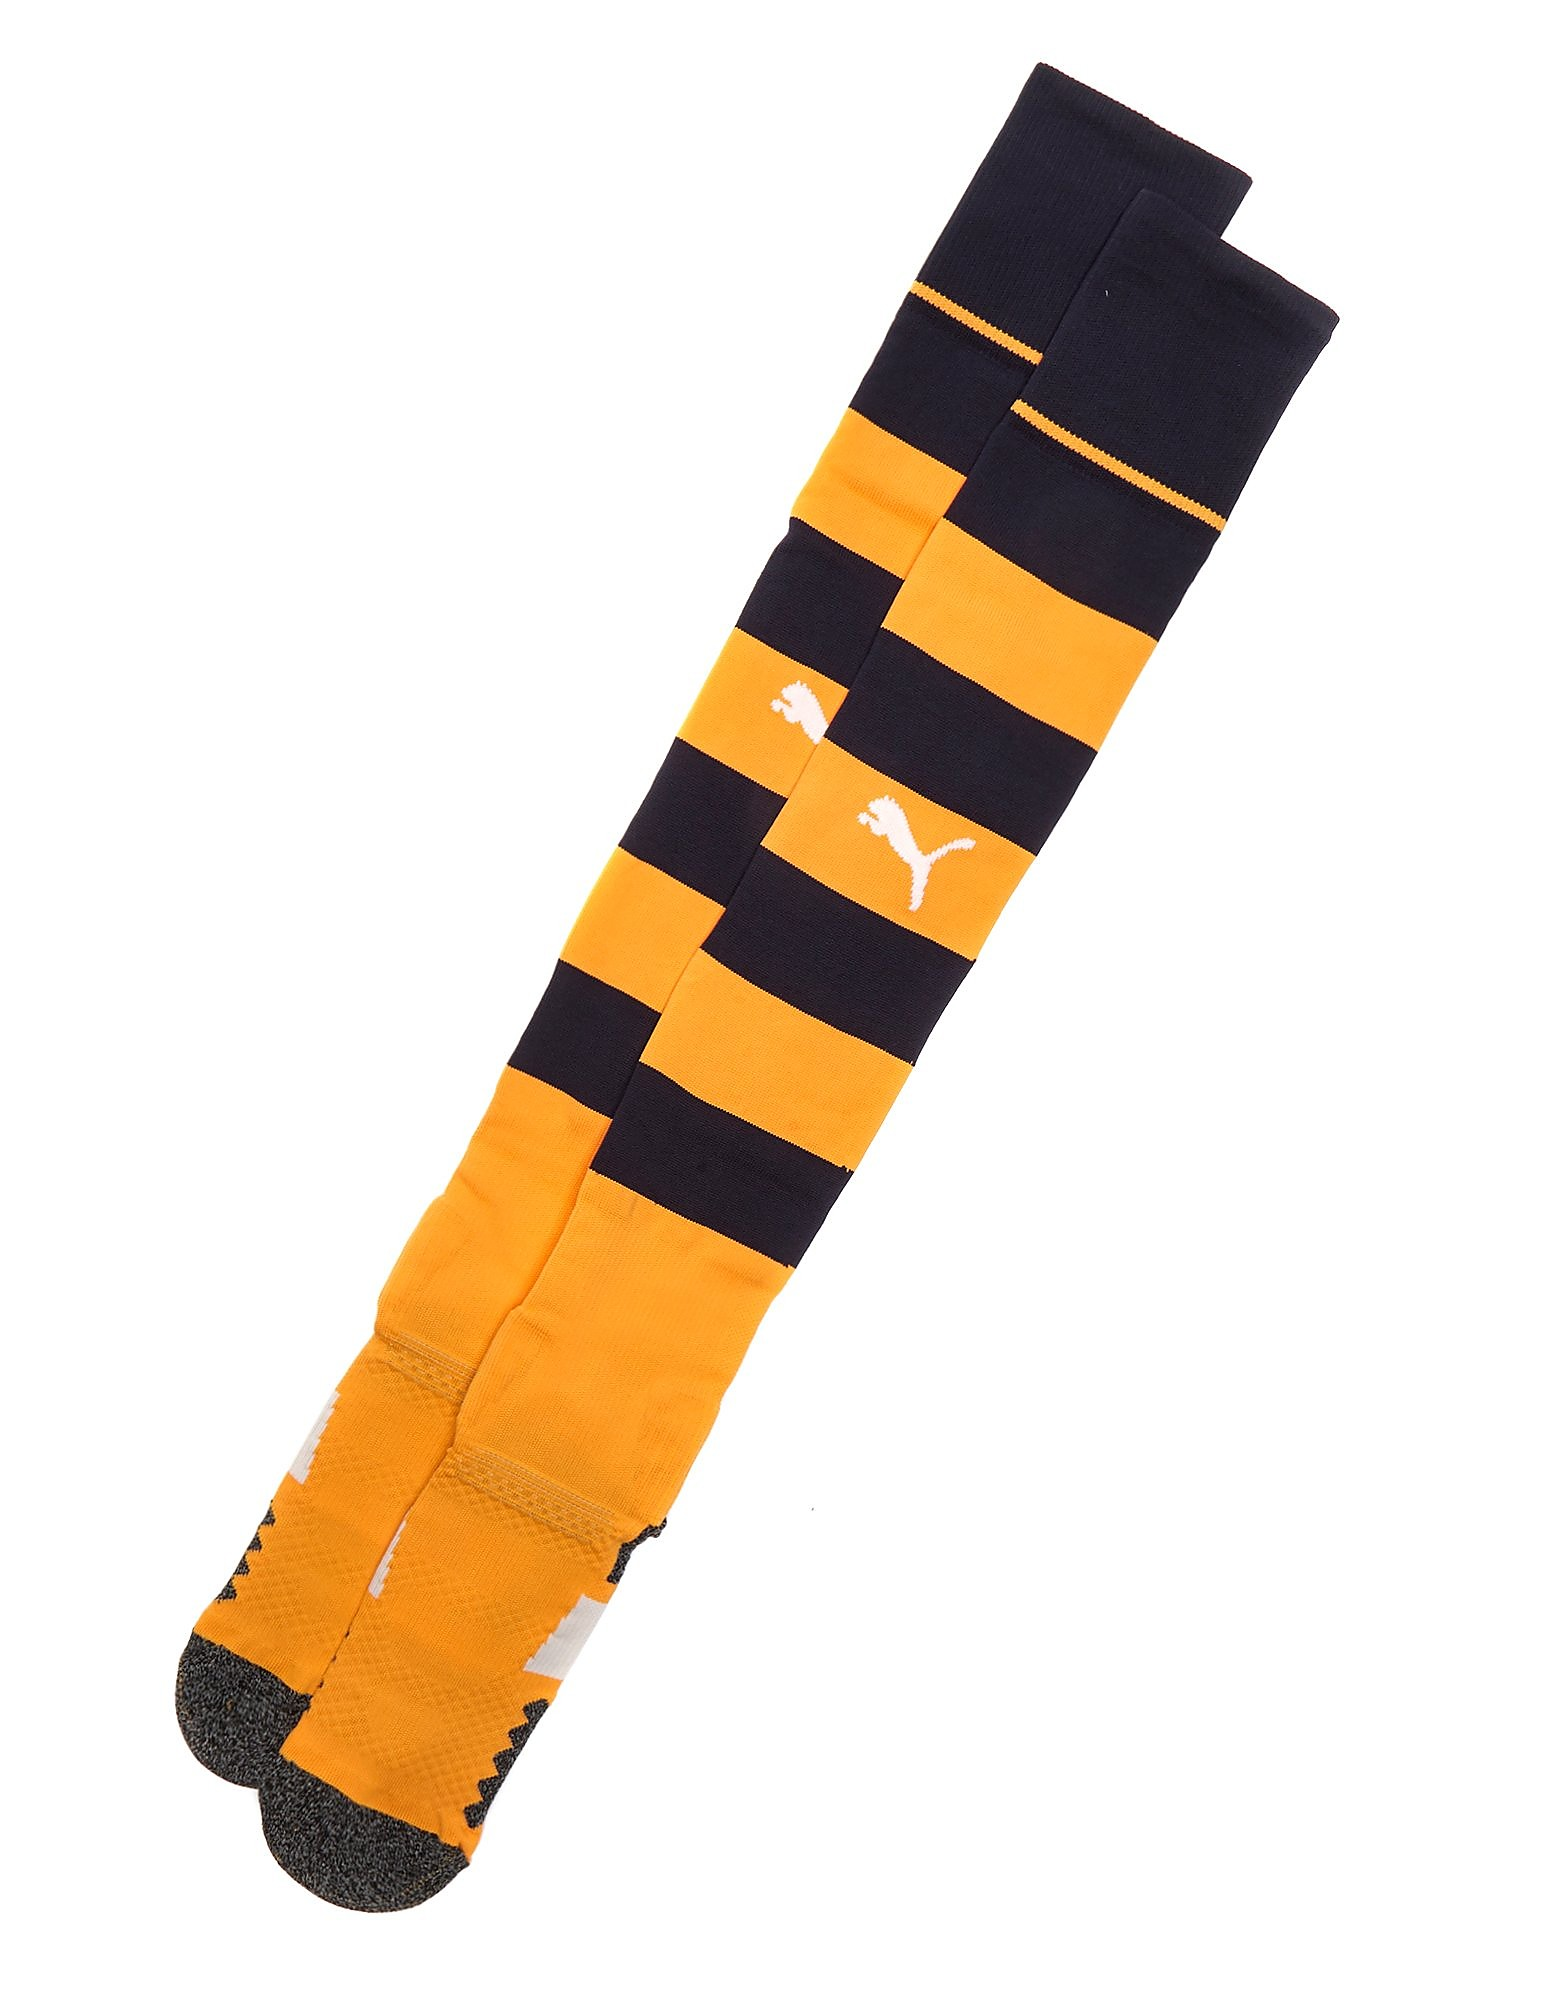 PUMA Newcastle United 2016/17 Away Socks